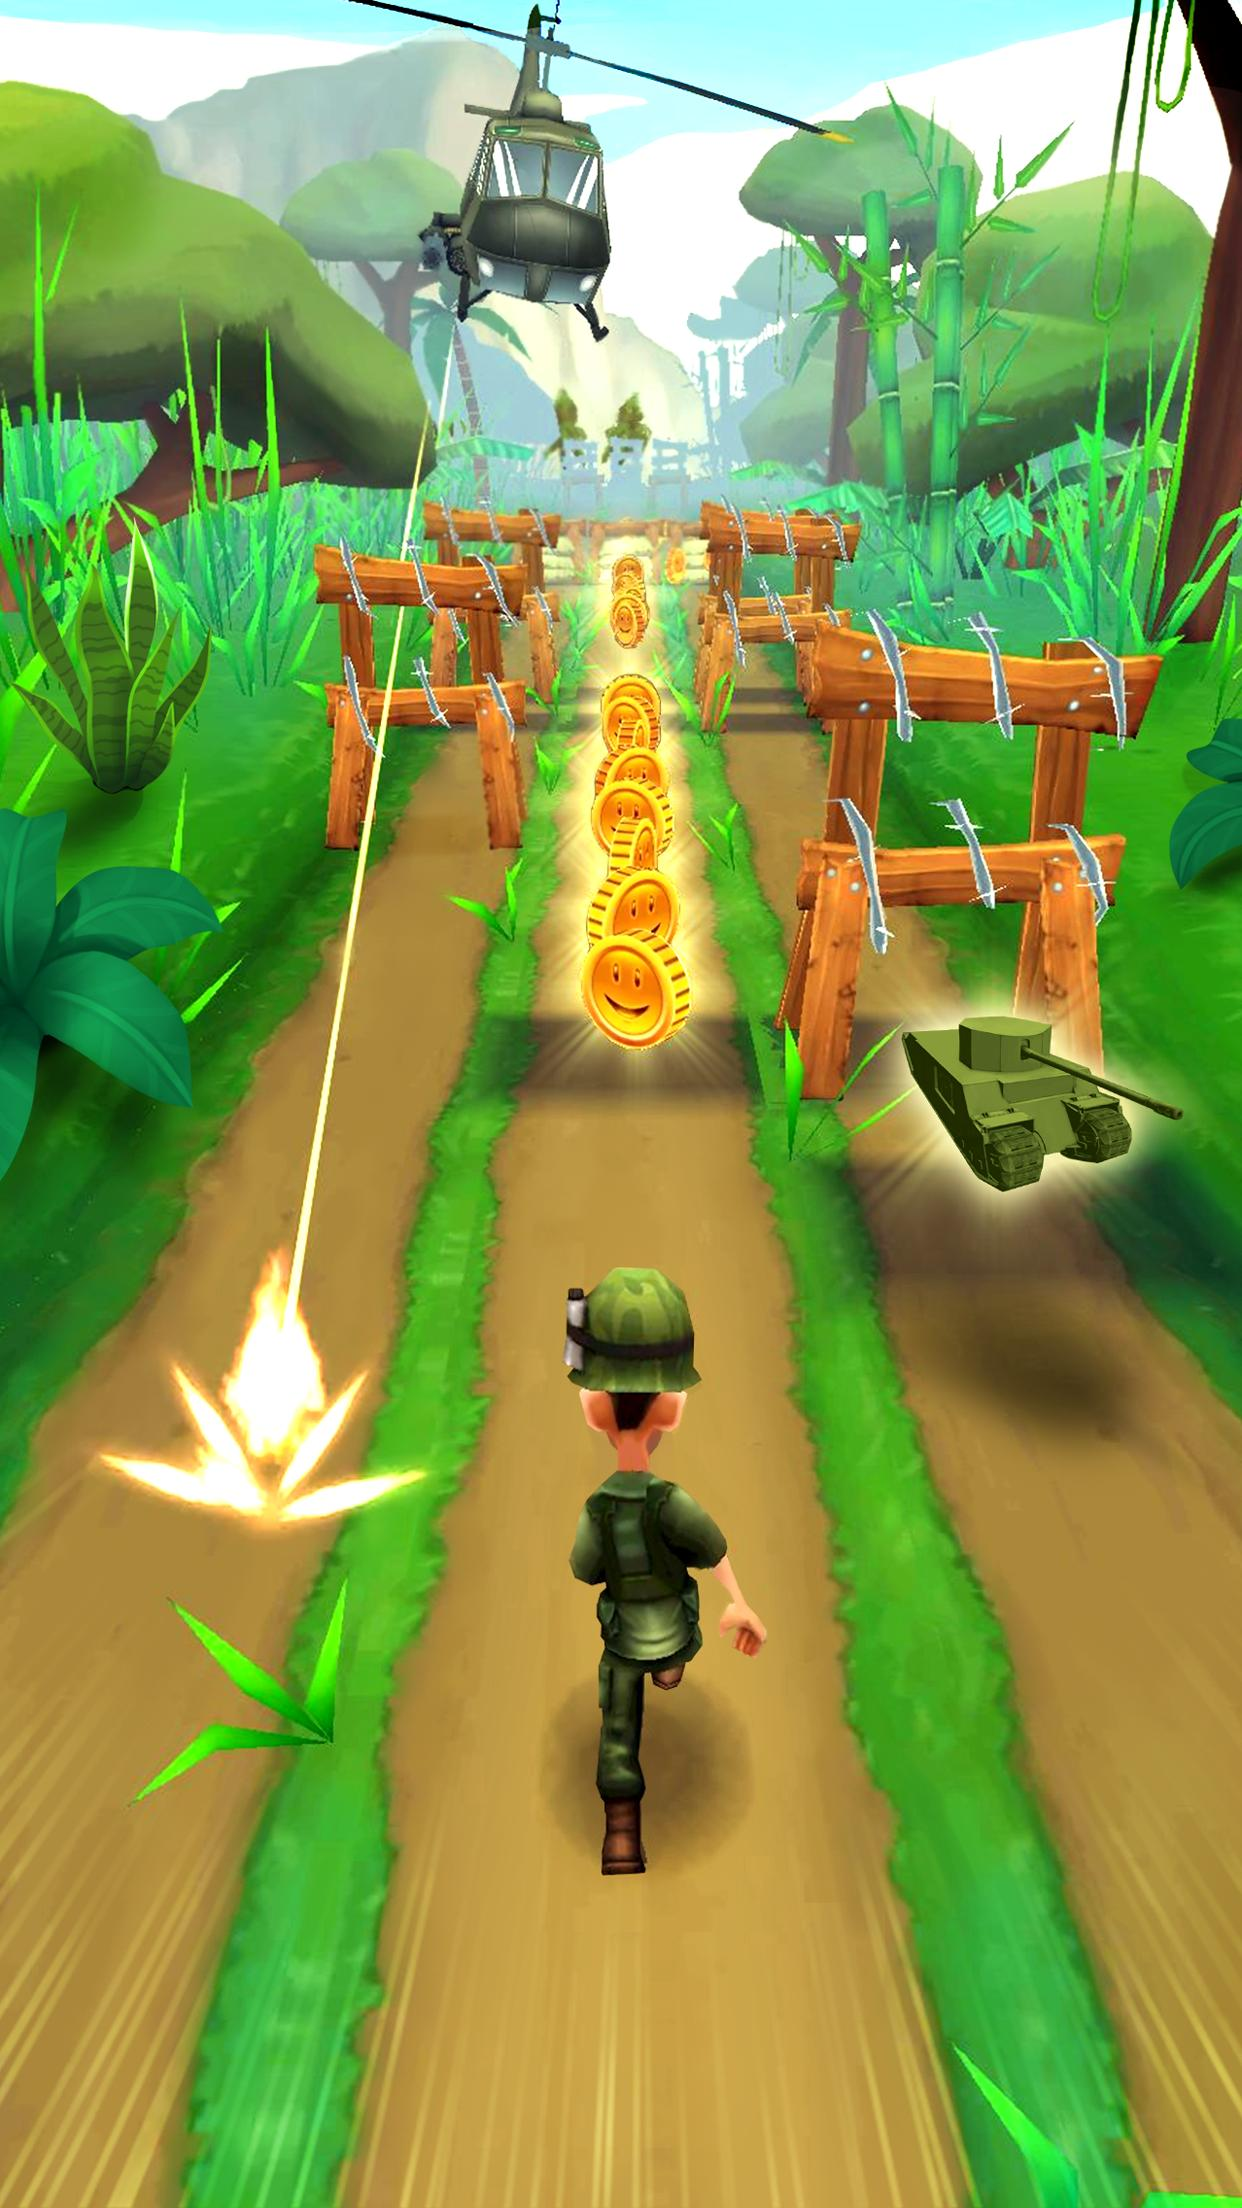 Run Forrest Run - New Games 2020: Running Games 1.6.4 Screenshot 16